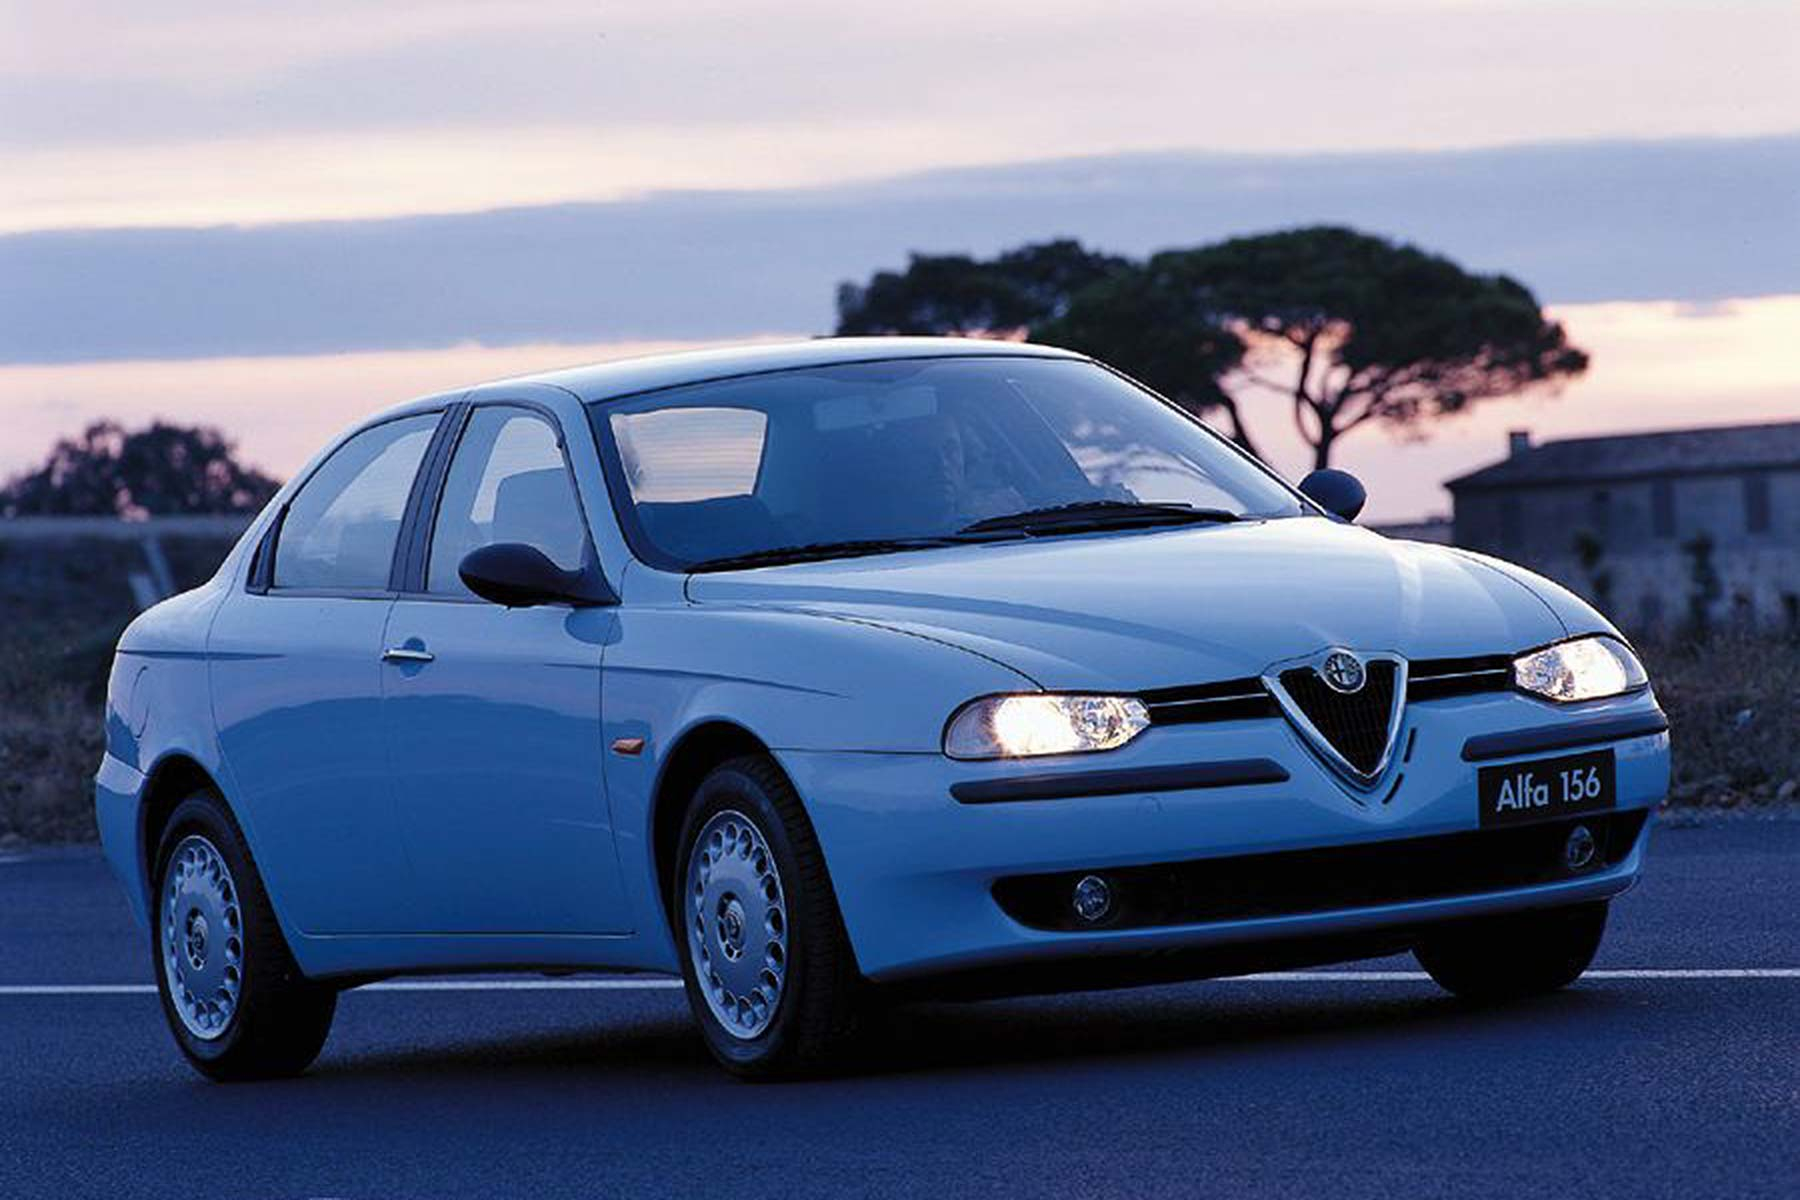 alfa romeo 156 motoring researchmotoring research. Black Bedroom Furniture Sets. Home Design Ideas